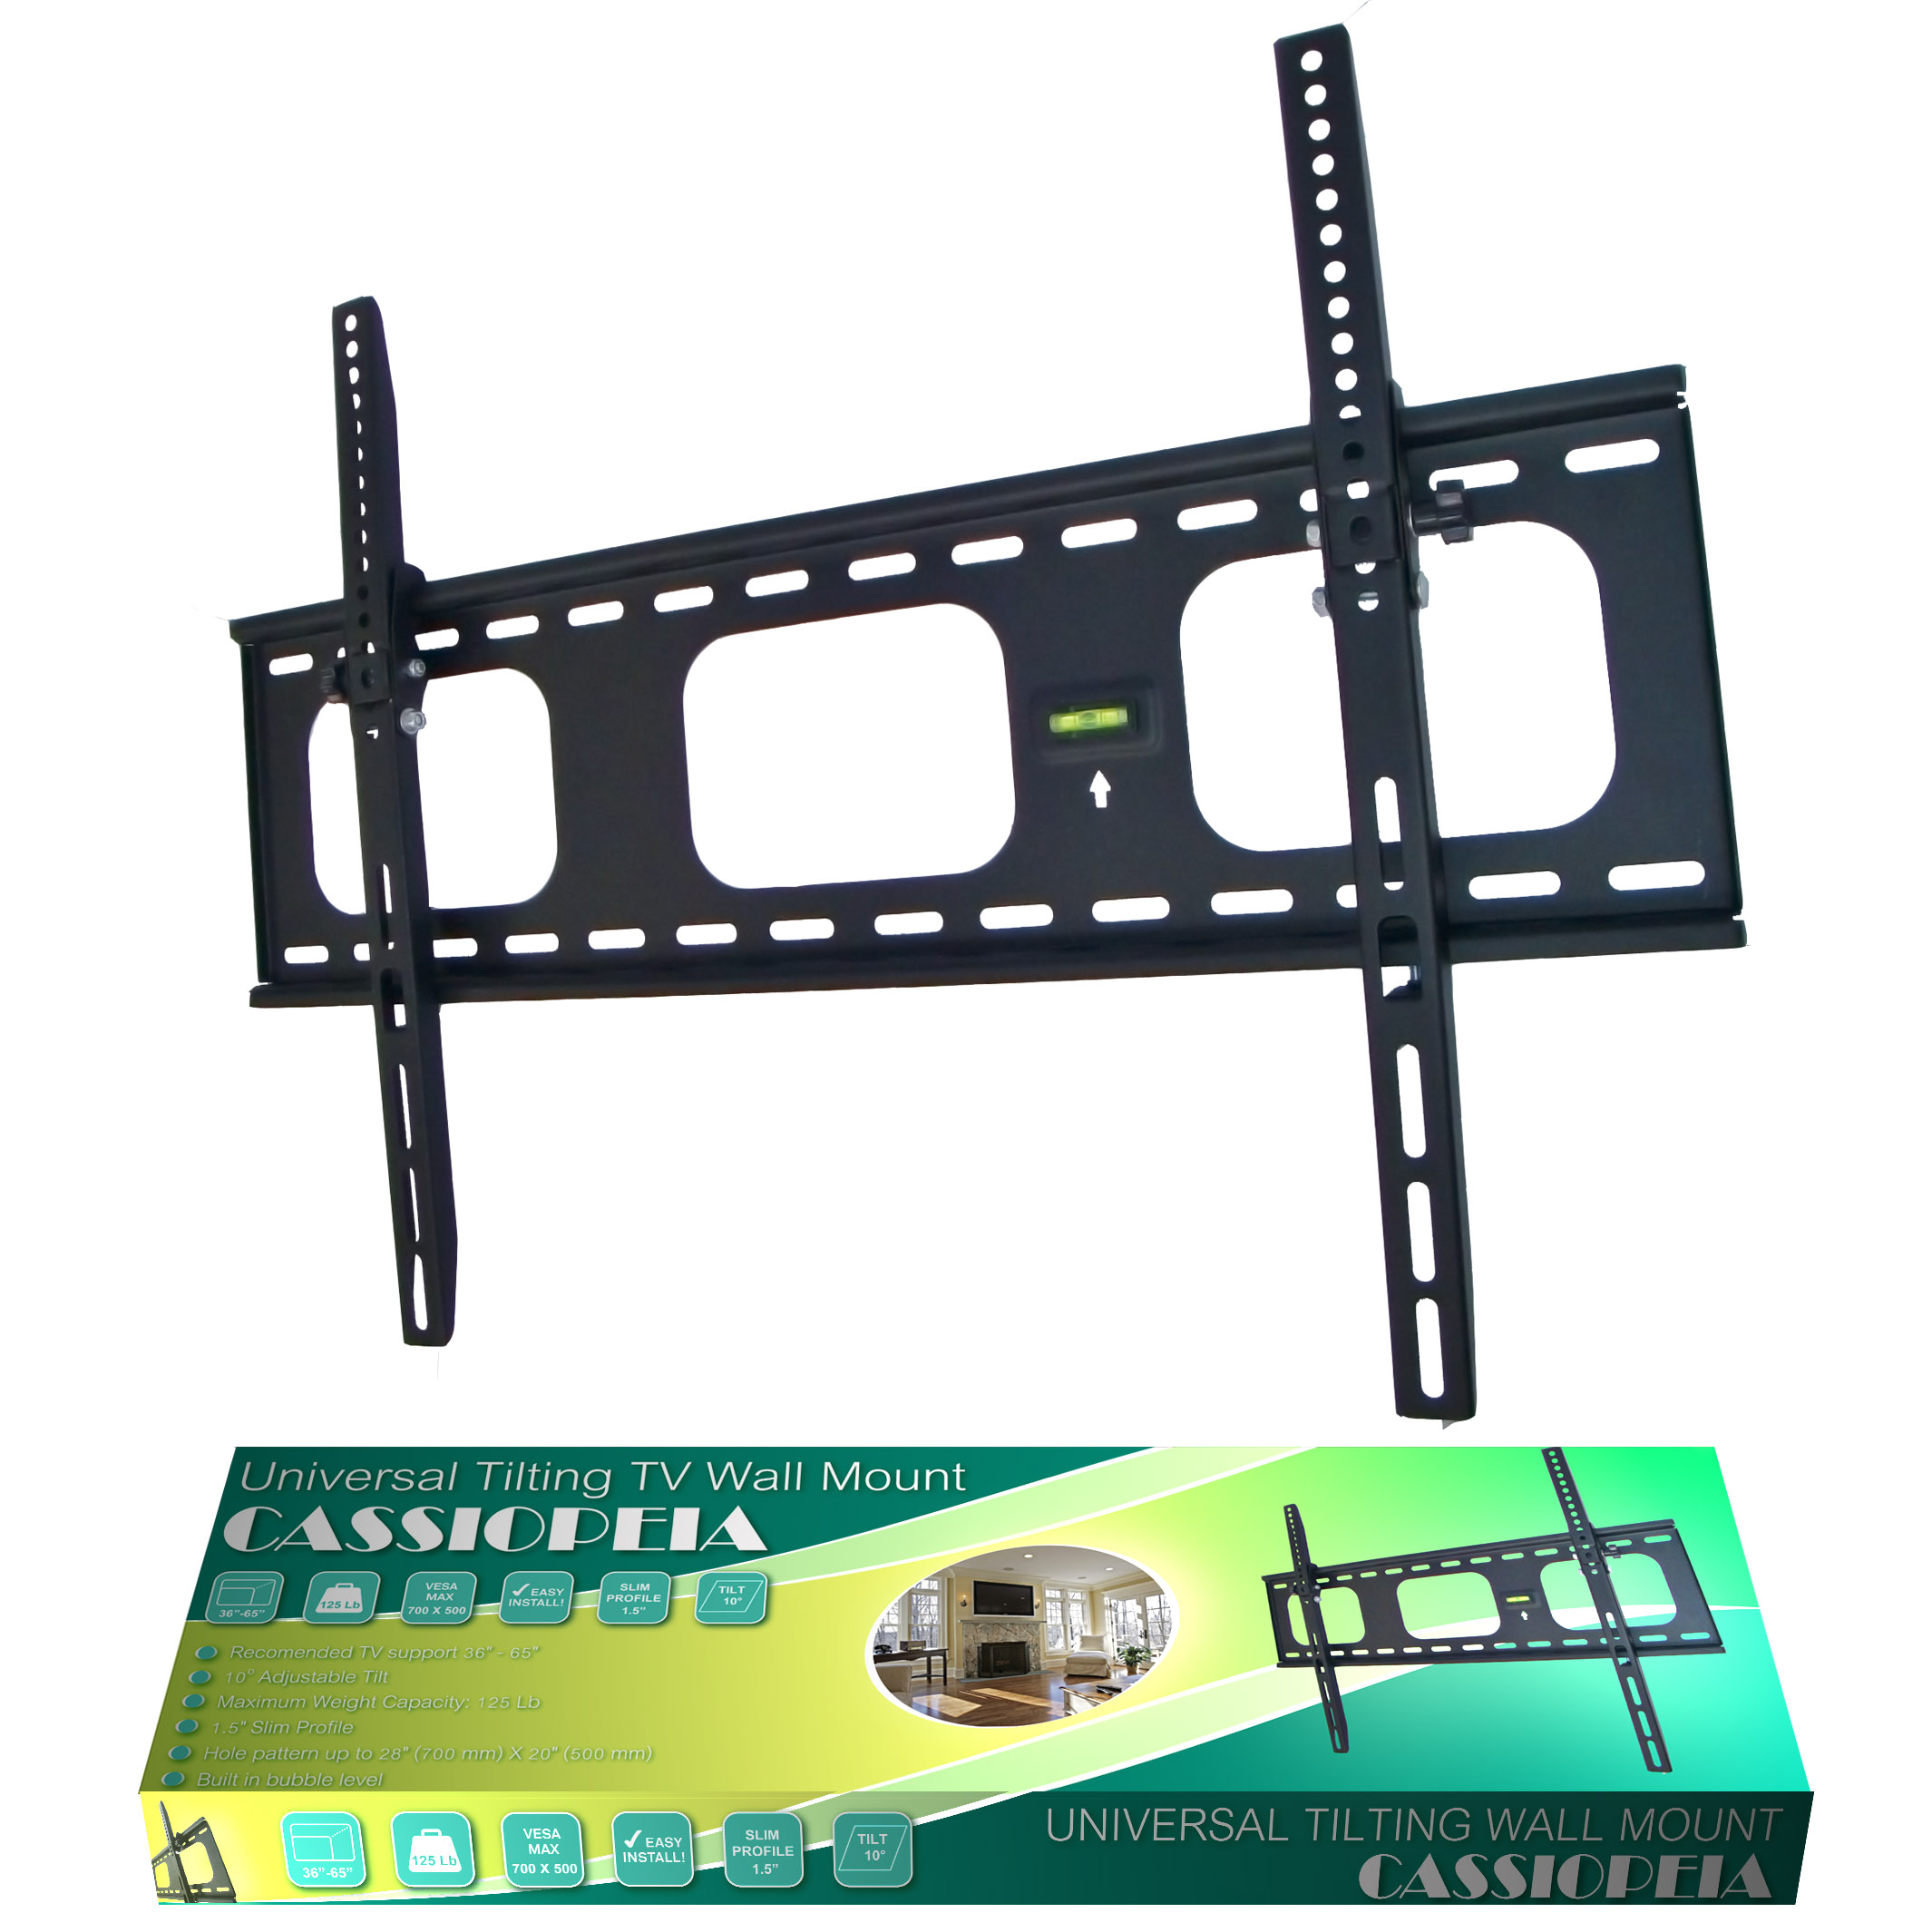 D-Mount Plasma LCD LED Flat Panel TV Tilting Tilt Wall Mount Bracket For 36 37 40 42 45 50 52 55 58 60 63 at Sears.com